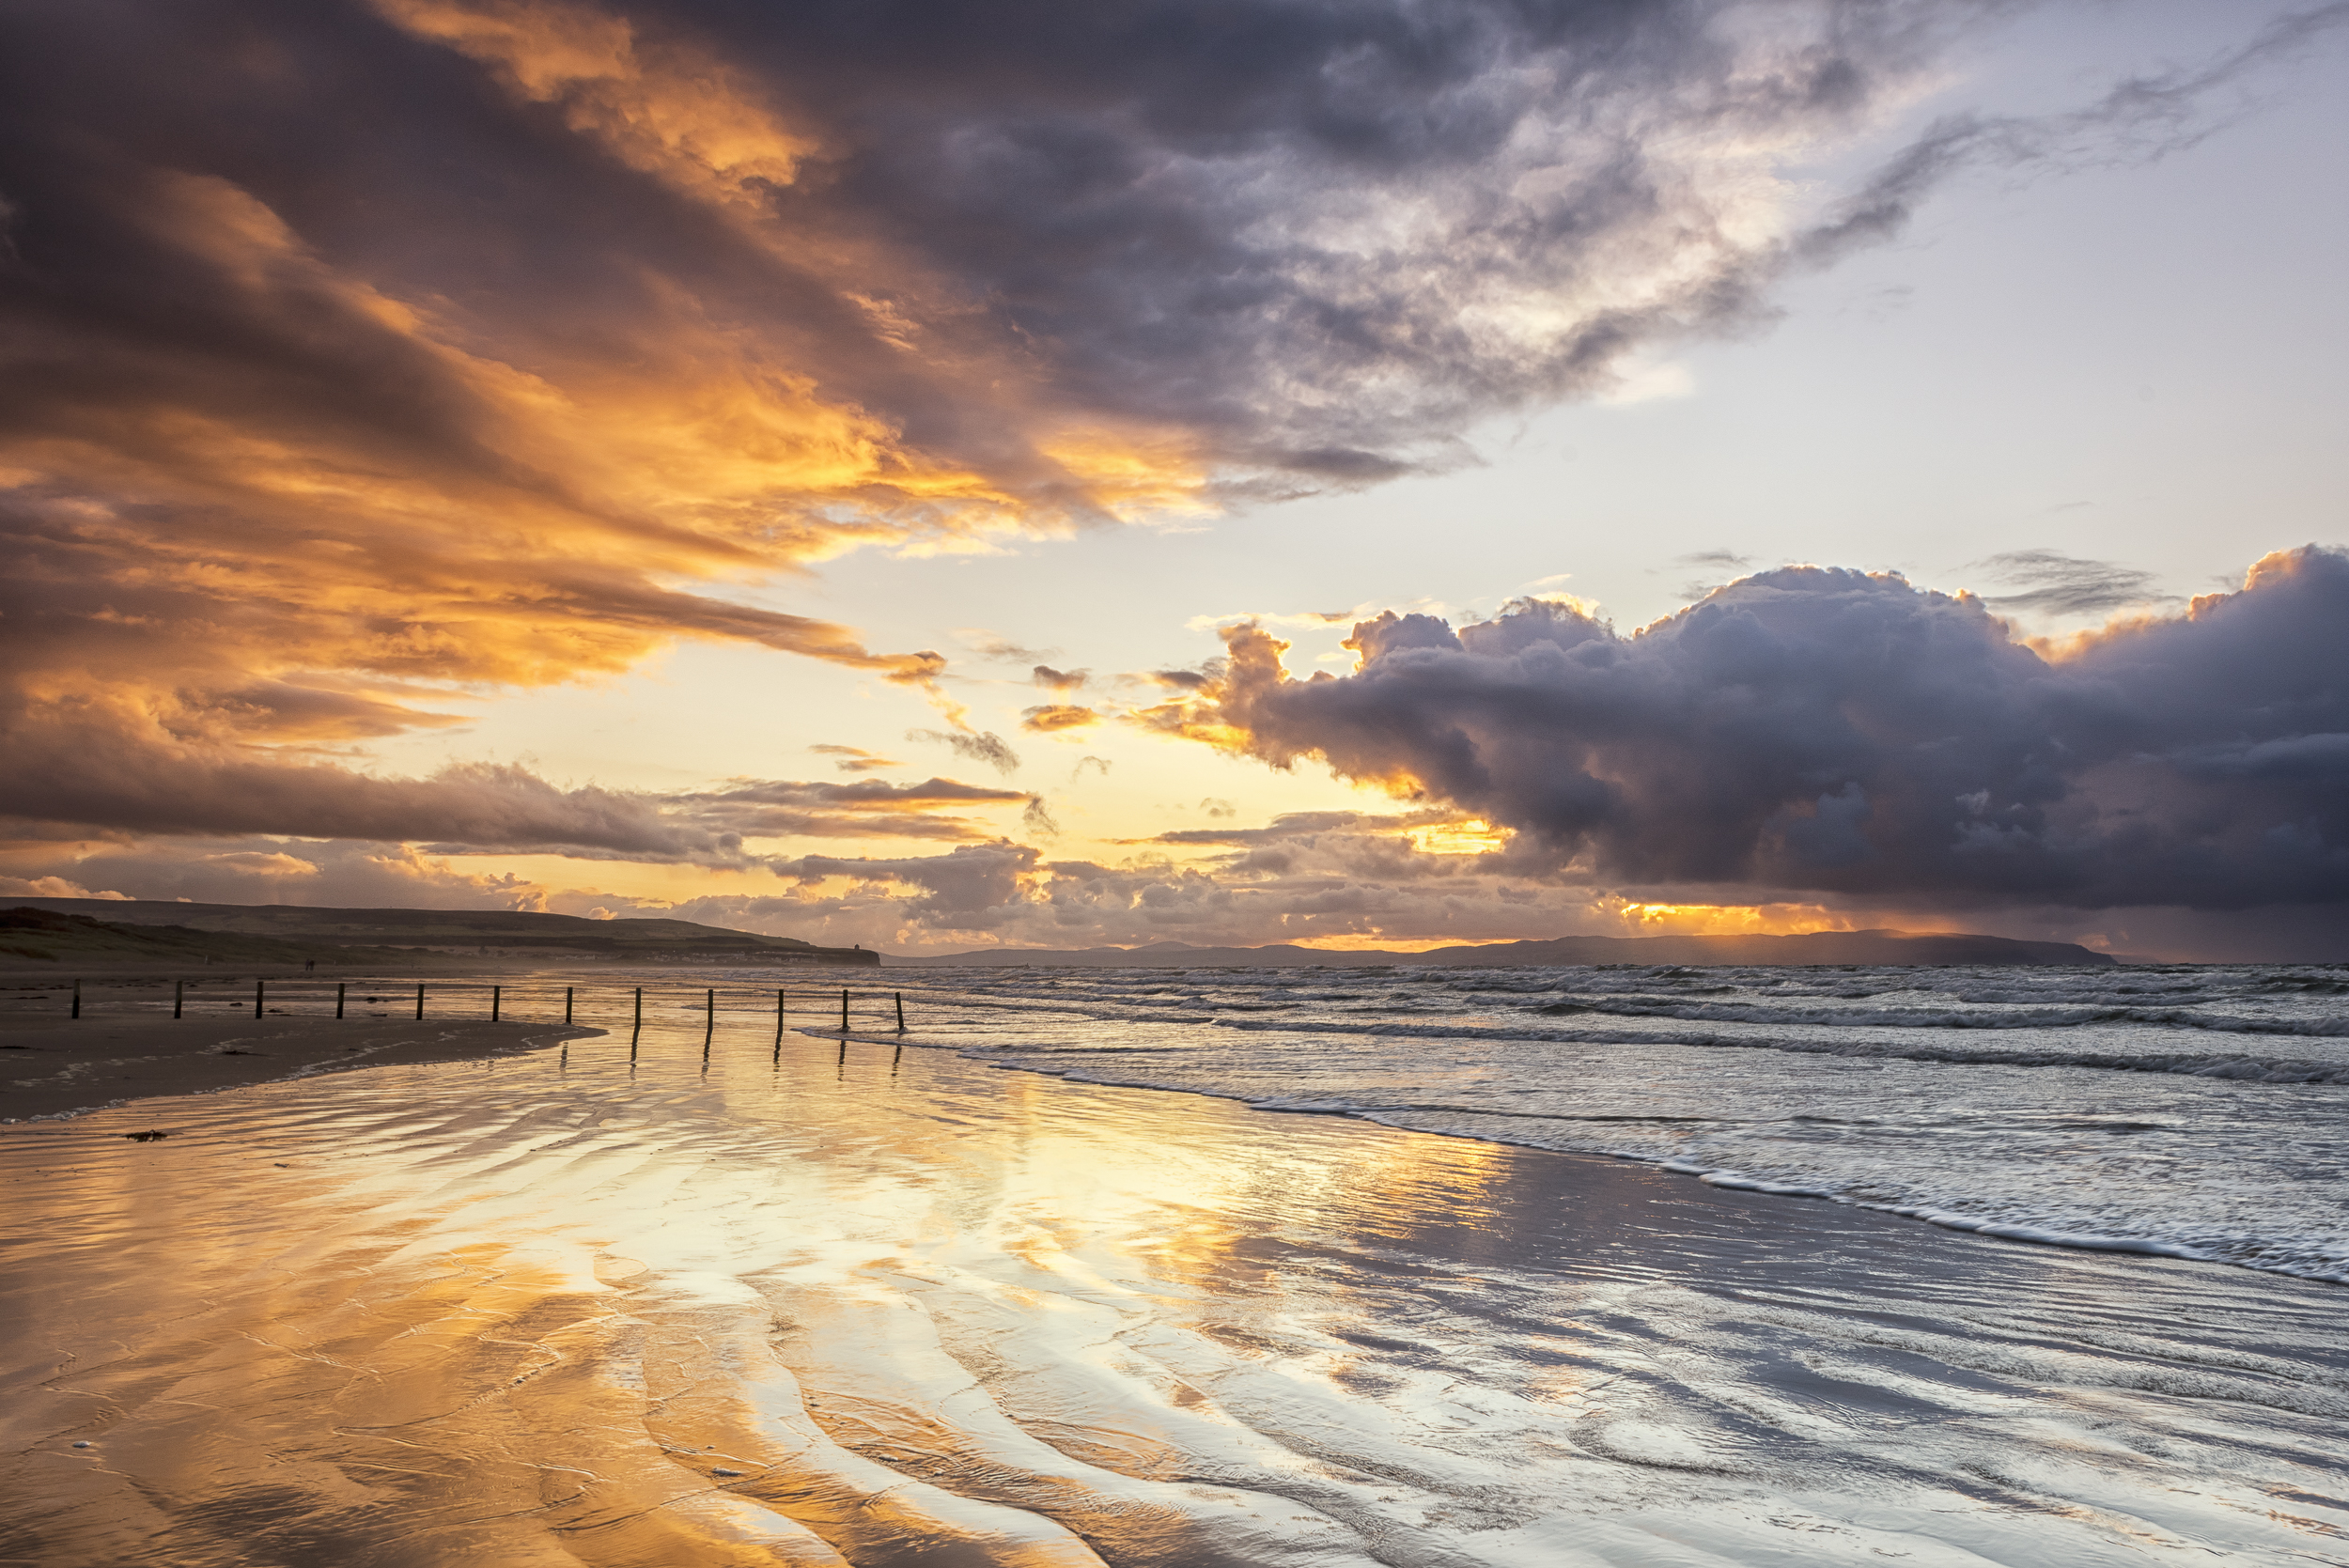 Silver and Gold, Portstewart Strand